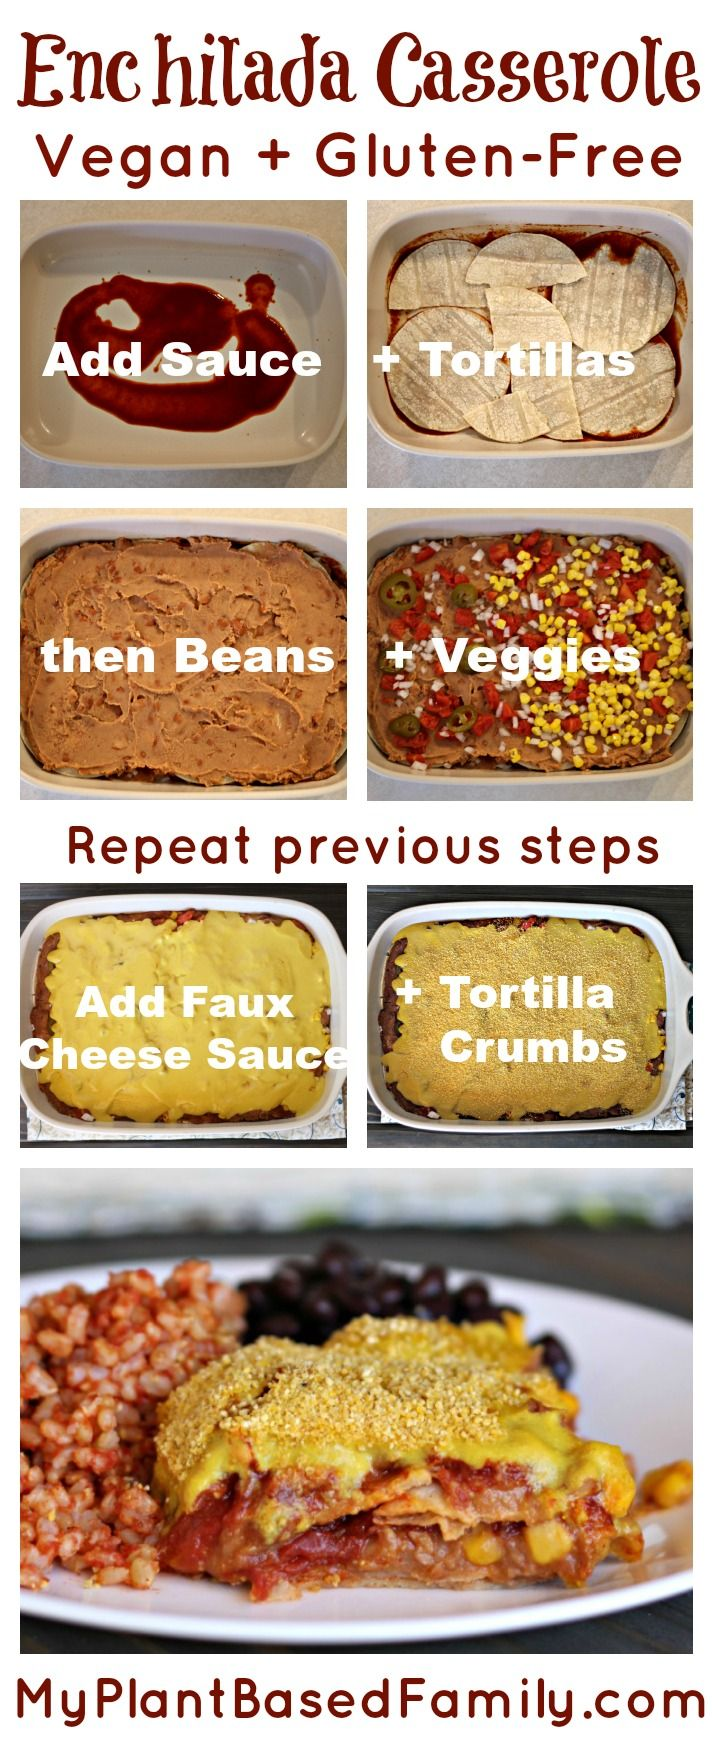 194 best my plant based family recipes images on pinterest enchilada casserole forumfinder Image collections